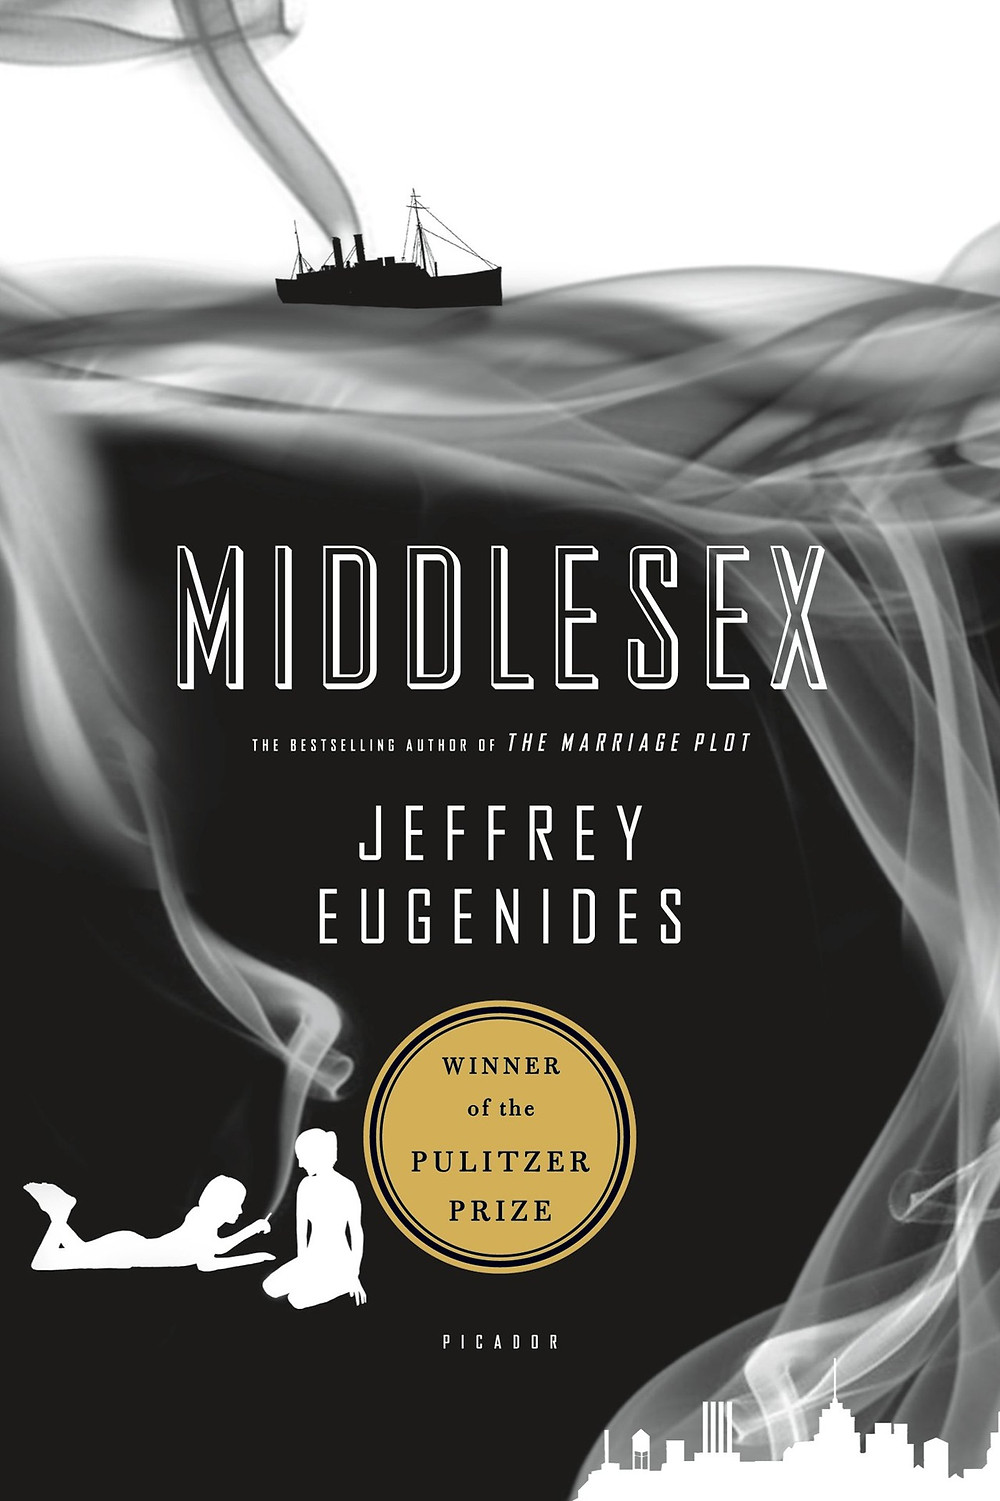 "Middlesex Jeffrey Eugenides (Author) ""I was born twice: first, as a baby girl, on a remarkably smogless Detroit day of January 1960; and then again, as a teenage boy, in an emergency room near Petoskey, Michigan, in August of l974. . . My birth certificate lists my name as Calliope Helen Stephanides. My most recent driver's license...records my first name simply as Cal."" So begins the breathtaking story of Calliope Stephanides and three generations of the Greek-American Stephanides family who travel from a tiny village overlooking Mount Olympus in Asia Minor to Prohibition-era Detroit, witnessing its glory days as the Motor City, and the race riots of l967, before they move out to the tree-lined streets of suburban Grosse Pointe, Michigan. To understand why Calliope is not like other girls, she has to uncover a guilty family secret and the astonishing genetic history that turns Callie into Cal, one of the most audacious and wondrous narrators in contemporary fiction. Lyrical and thrilling, Middlesex is an exhilarating reinvention of the American epic. Middlesex is the winner of the 2003 Pulitzer Prize for Fiction."